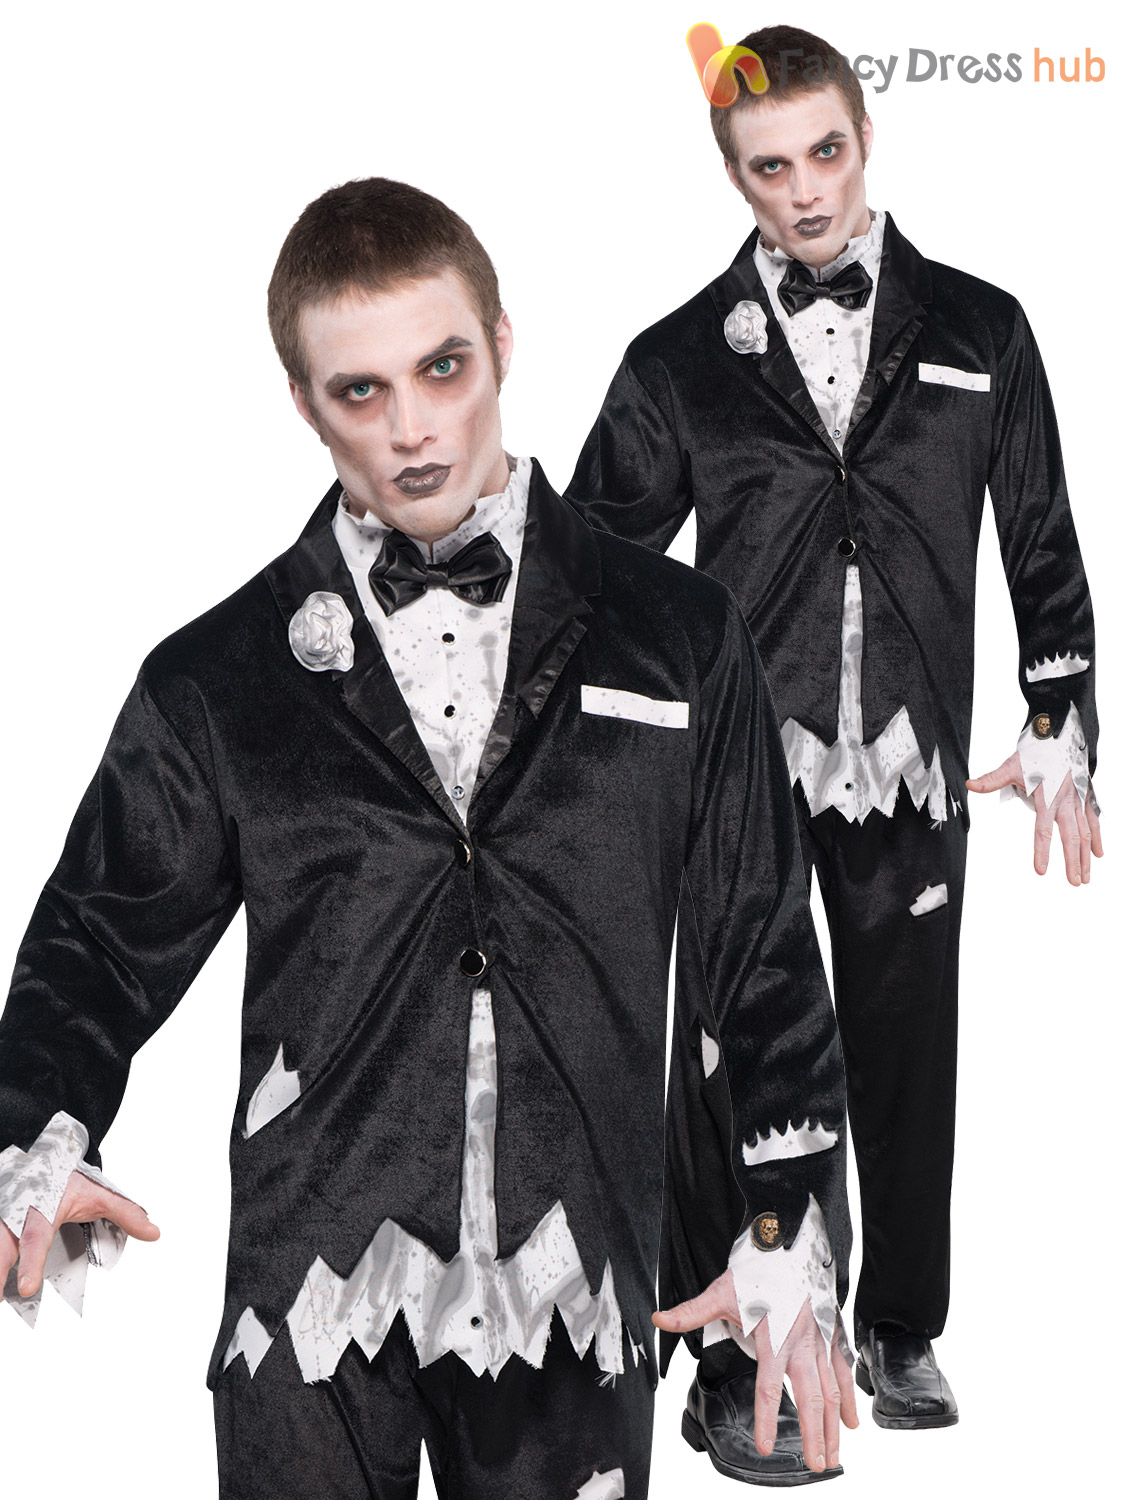 Couples Ladies and Mens Corpse Dead Bride /& Groom Fancy Dress Costumes Outfits